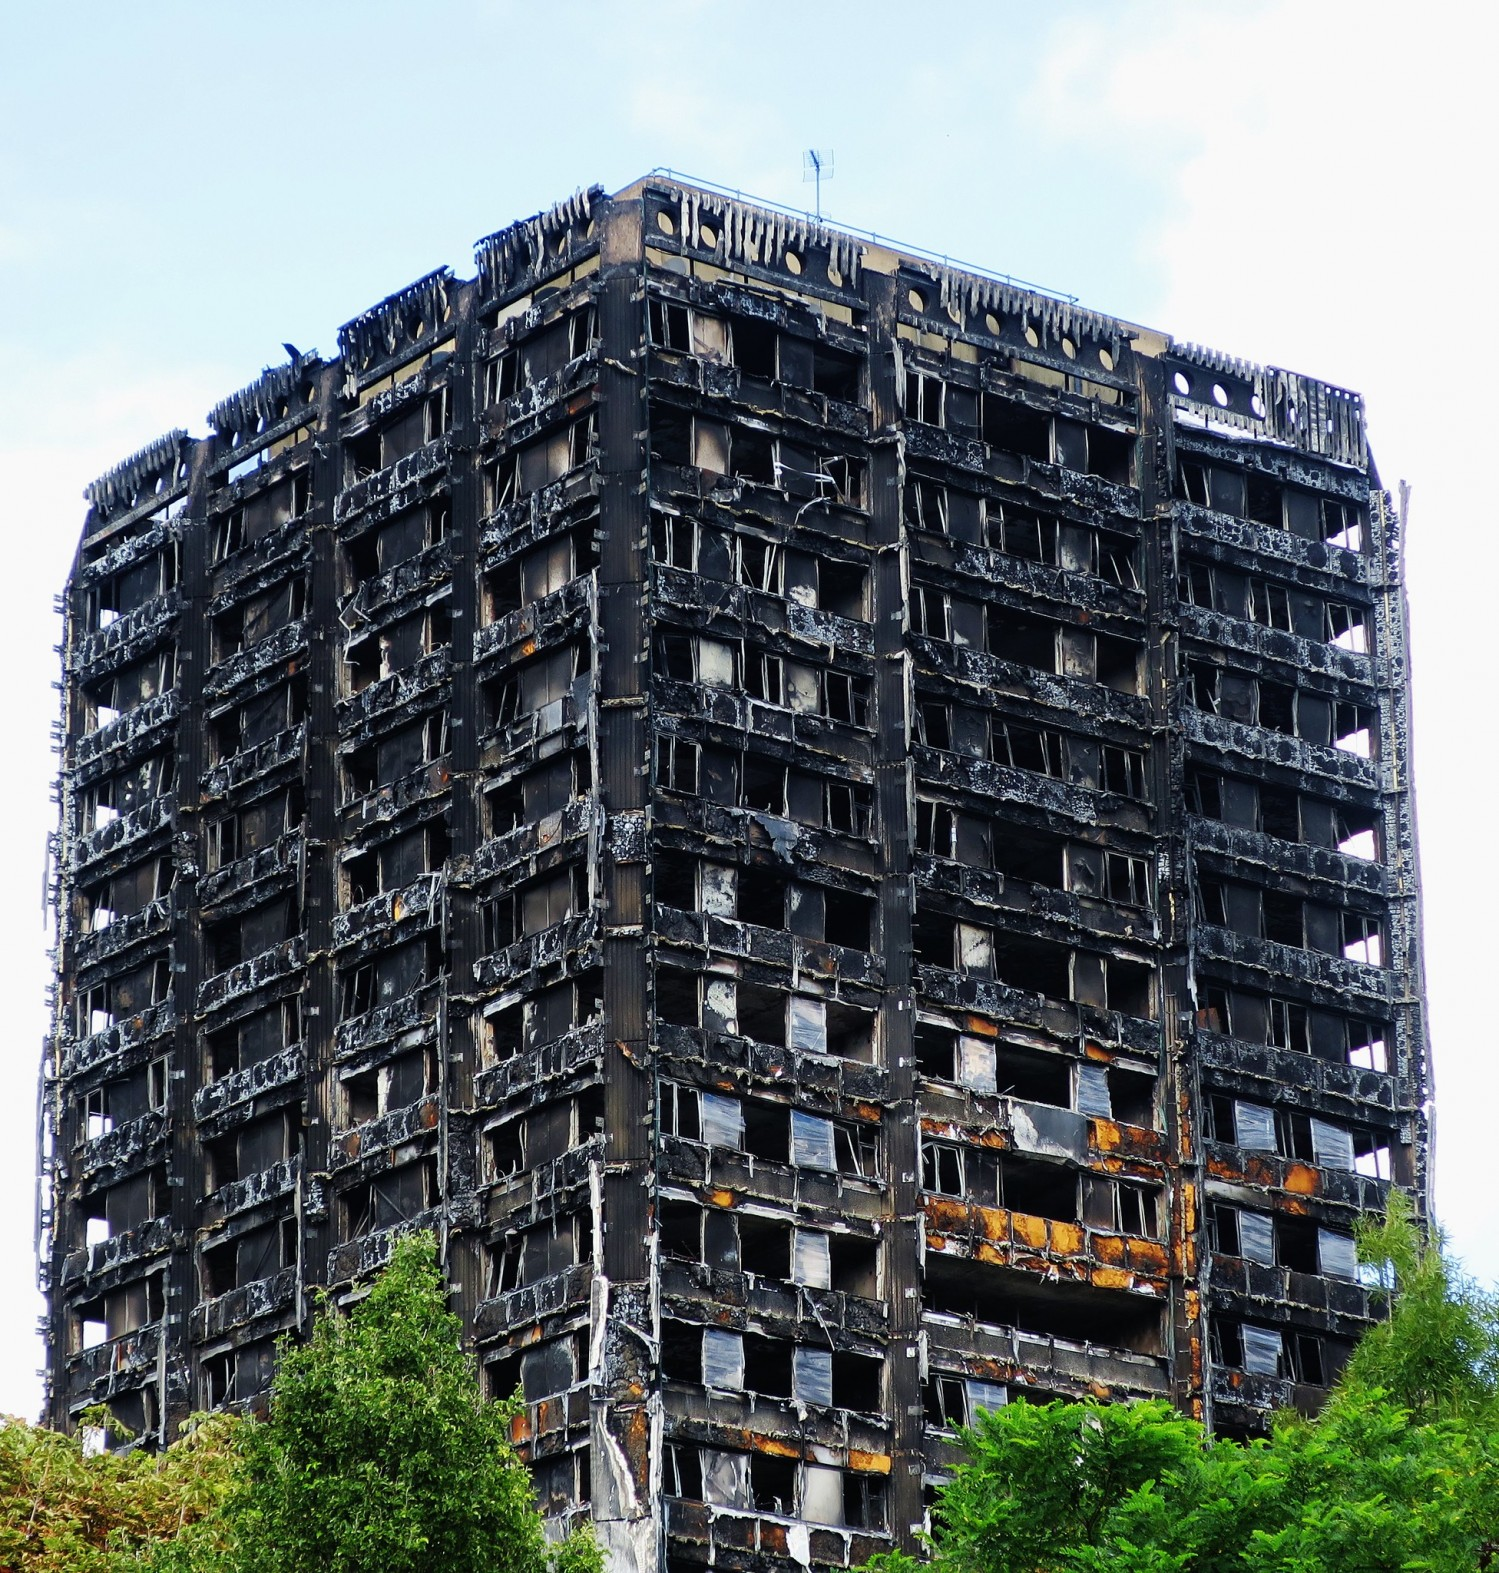 Grenfell Tower / fot. Alex JD, CC BY-NC-ND 2.0